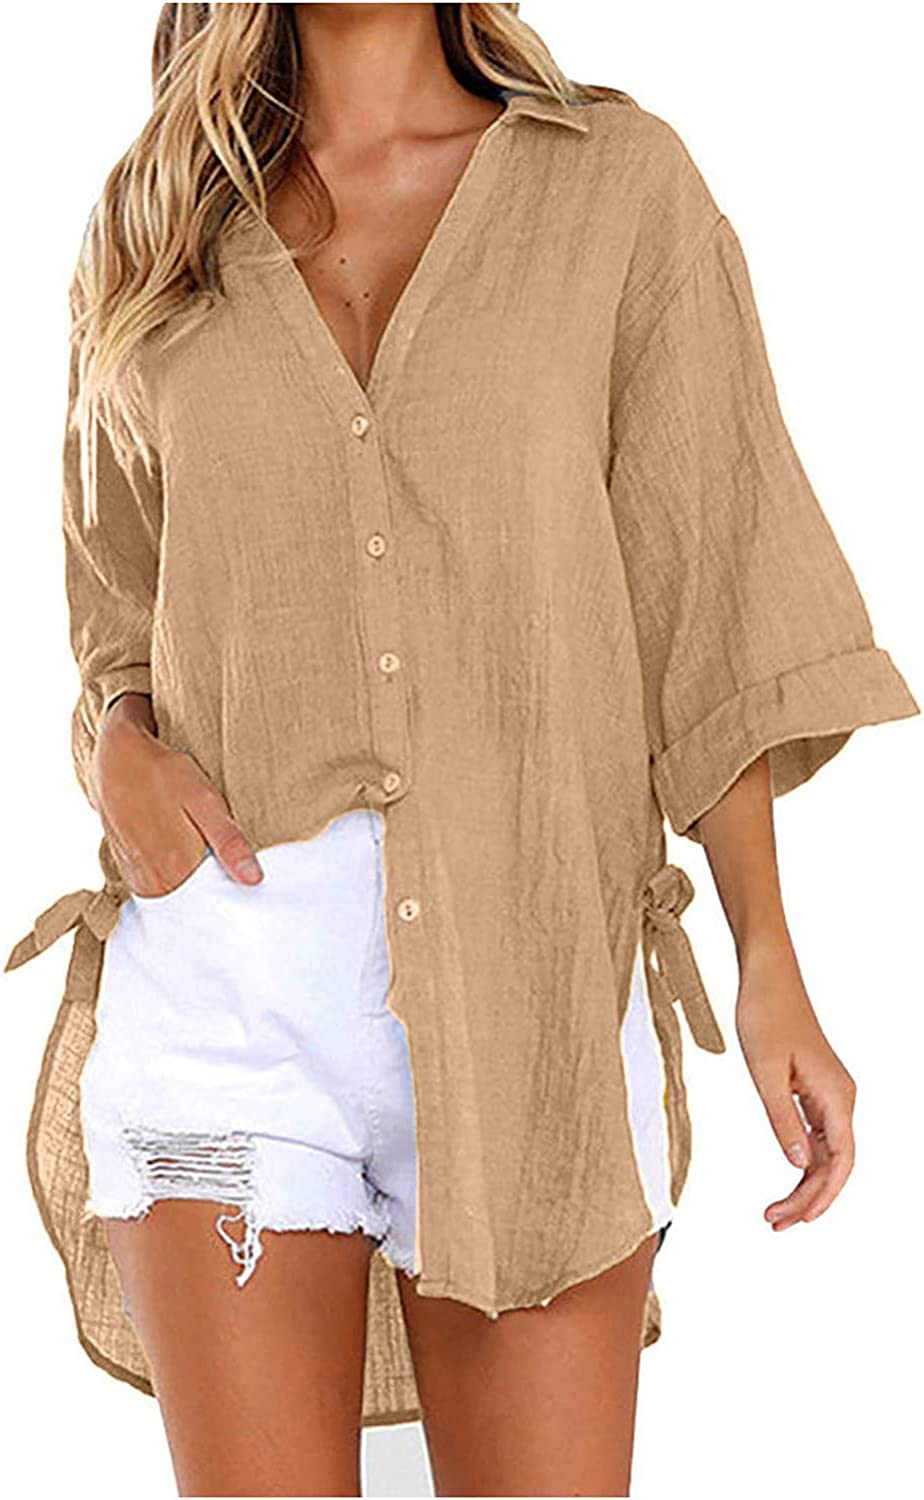 Womens Linen Blouse V Neck Lapel Button Shirts Lace-up Side Knot Casual 3/4 Sleeve Tops